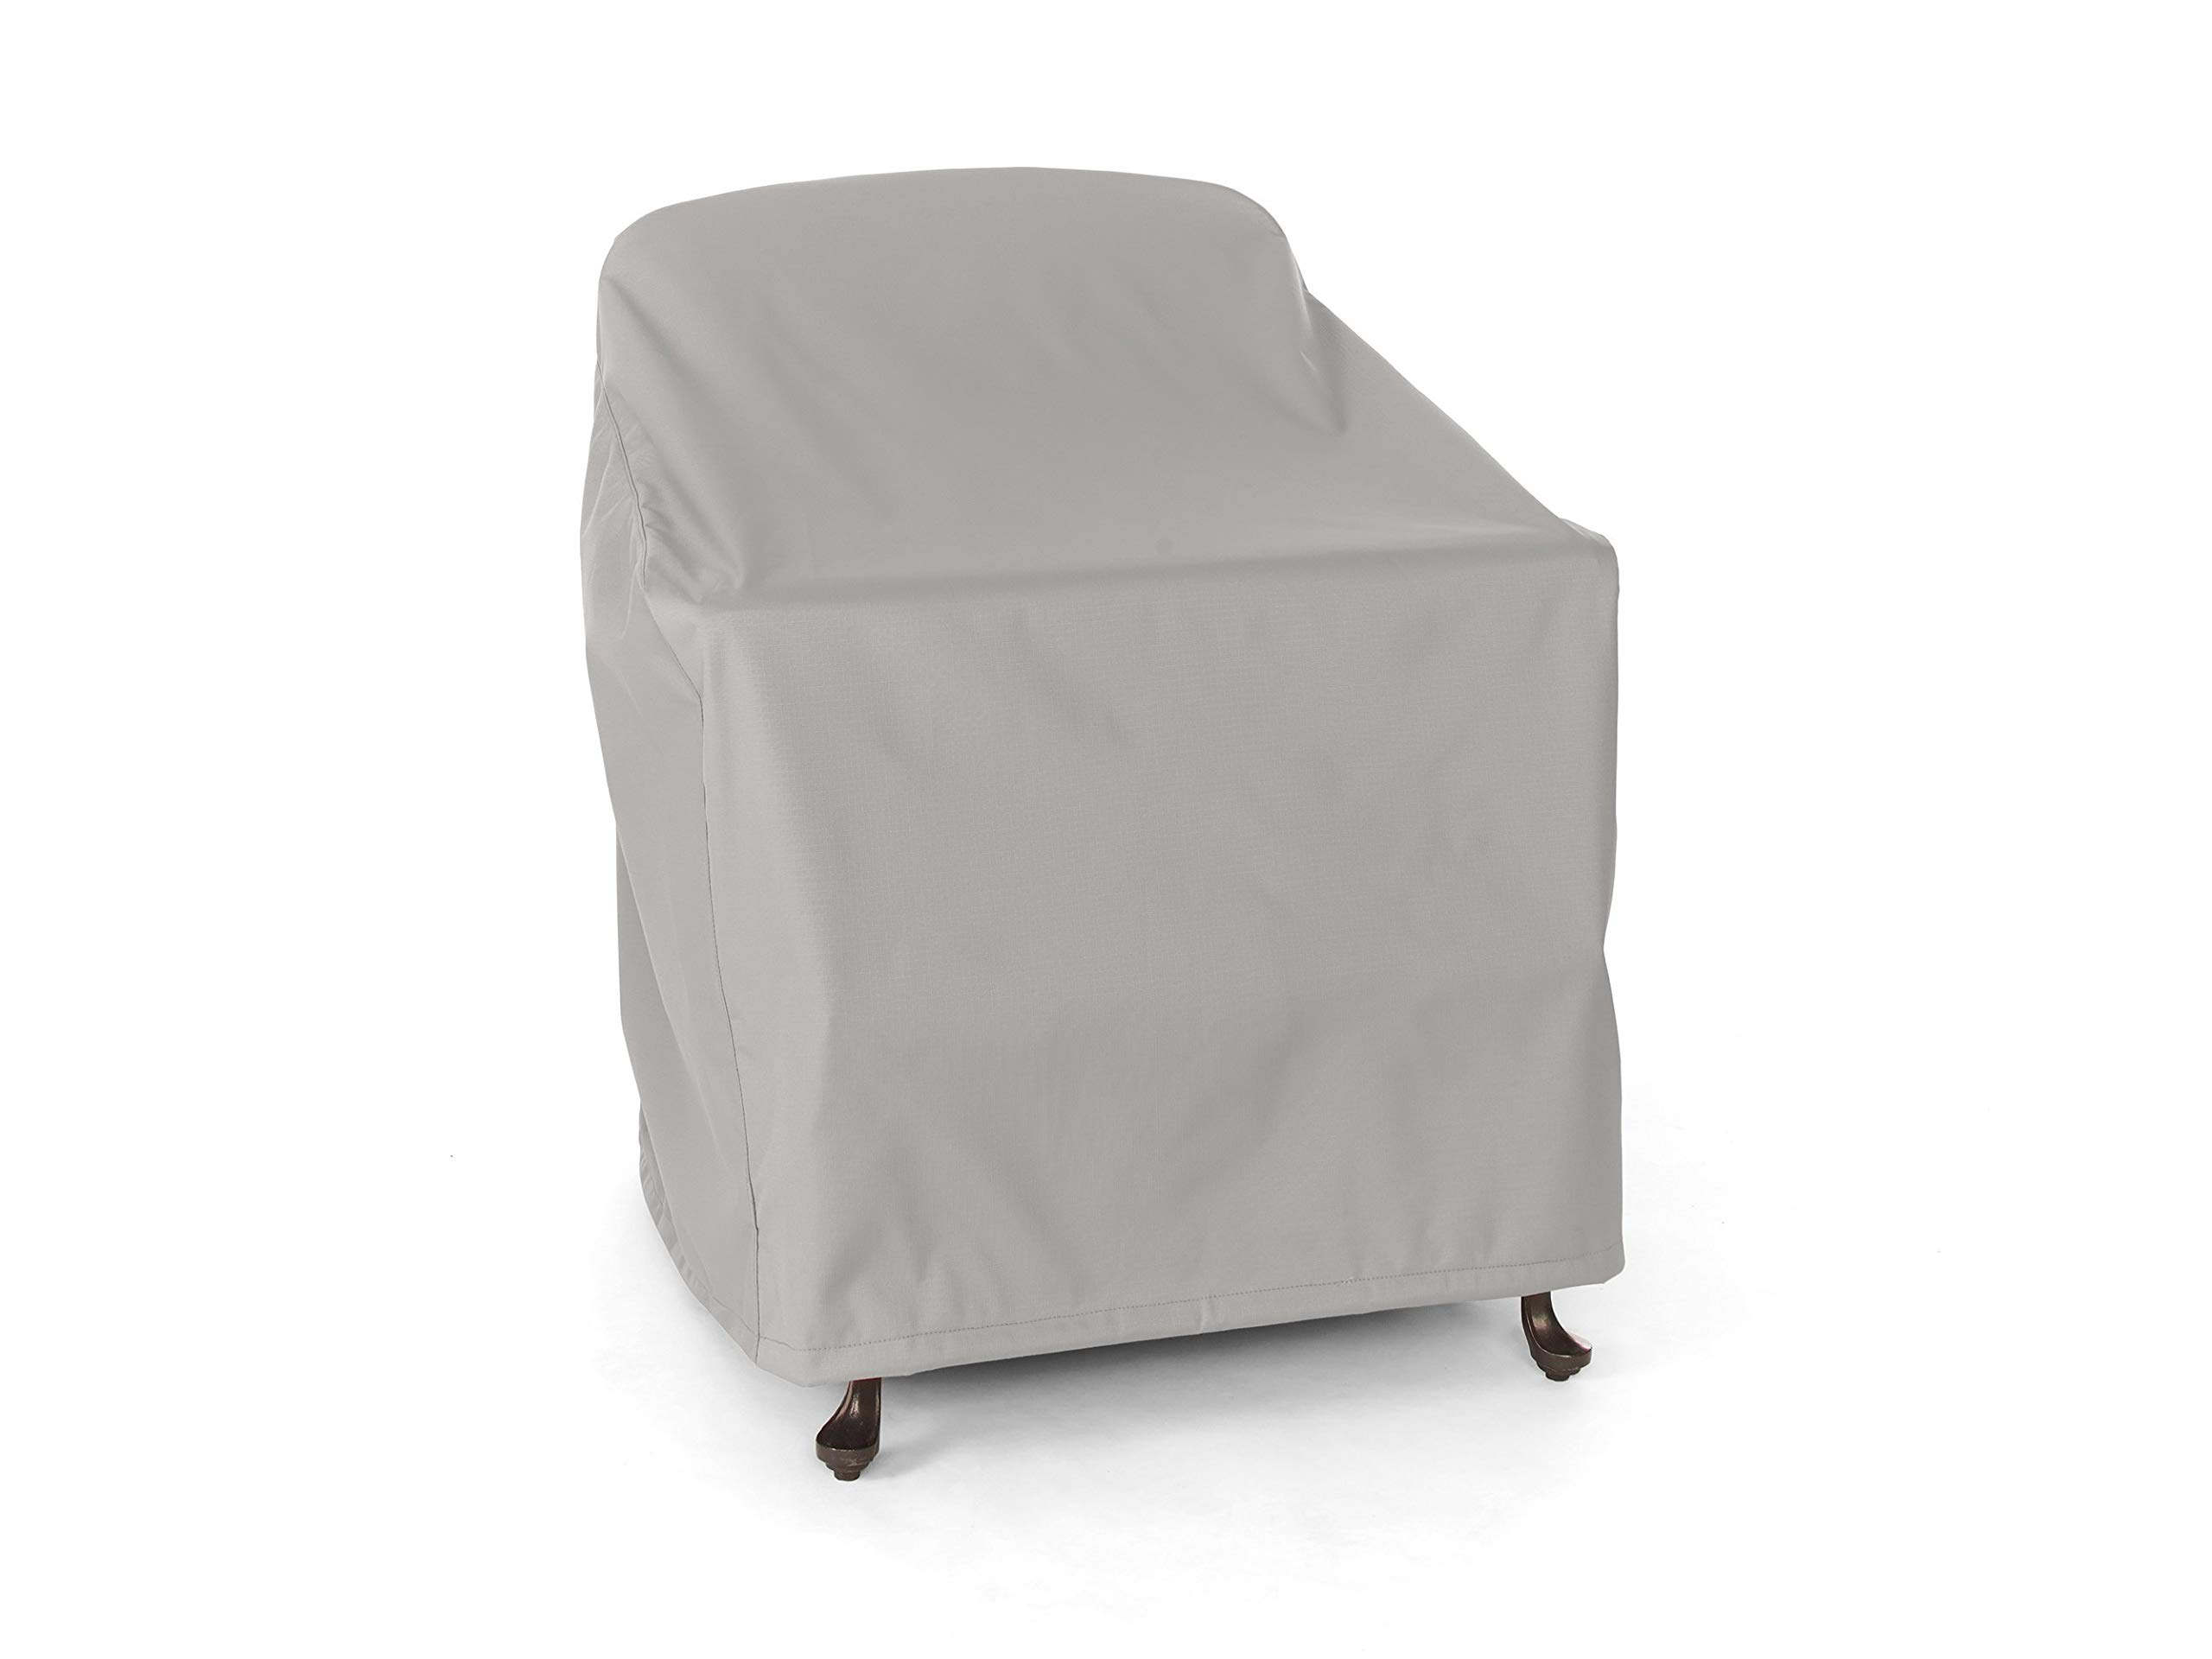 CoverMates: Outdoor Chair Cover - Fits 36 Inch Width x 35 Inch Depth x 32 Inch Height - Ultima Ripstop - 600D UV/Water Resistant Poly - Covered Vent - 4 Buckle Straps - 7YR Warranty- Ripstop Grey